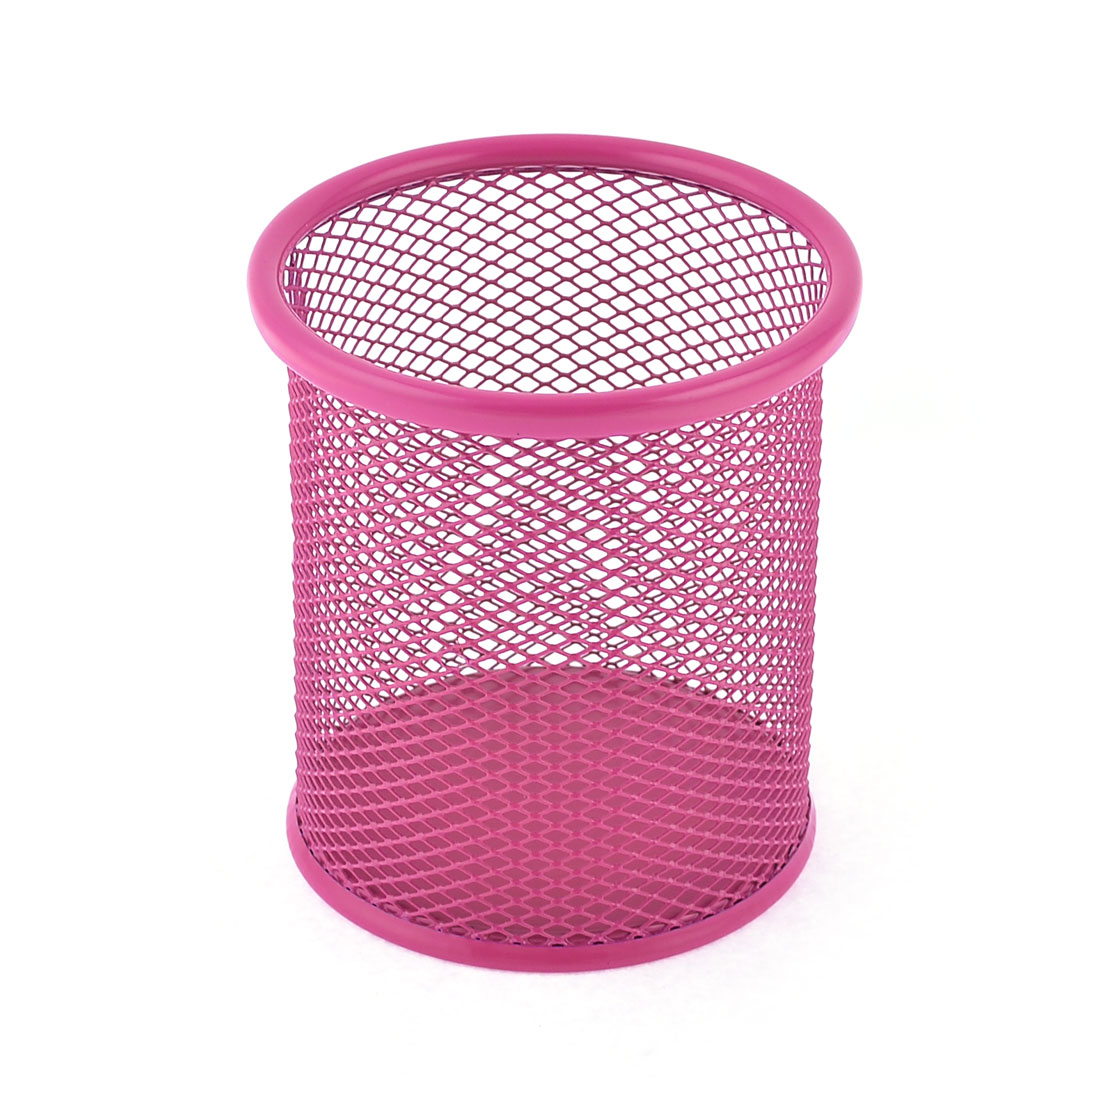 Cylinder Shaped Pen Mesh Holder Container Desktop Decor Fuchsia 9cm Dia